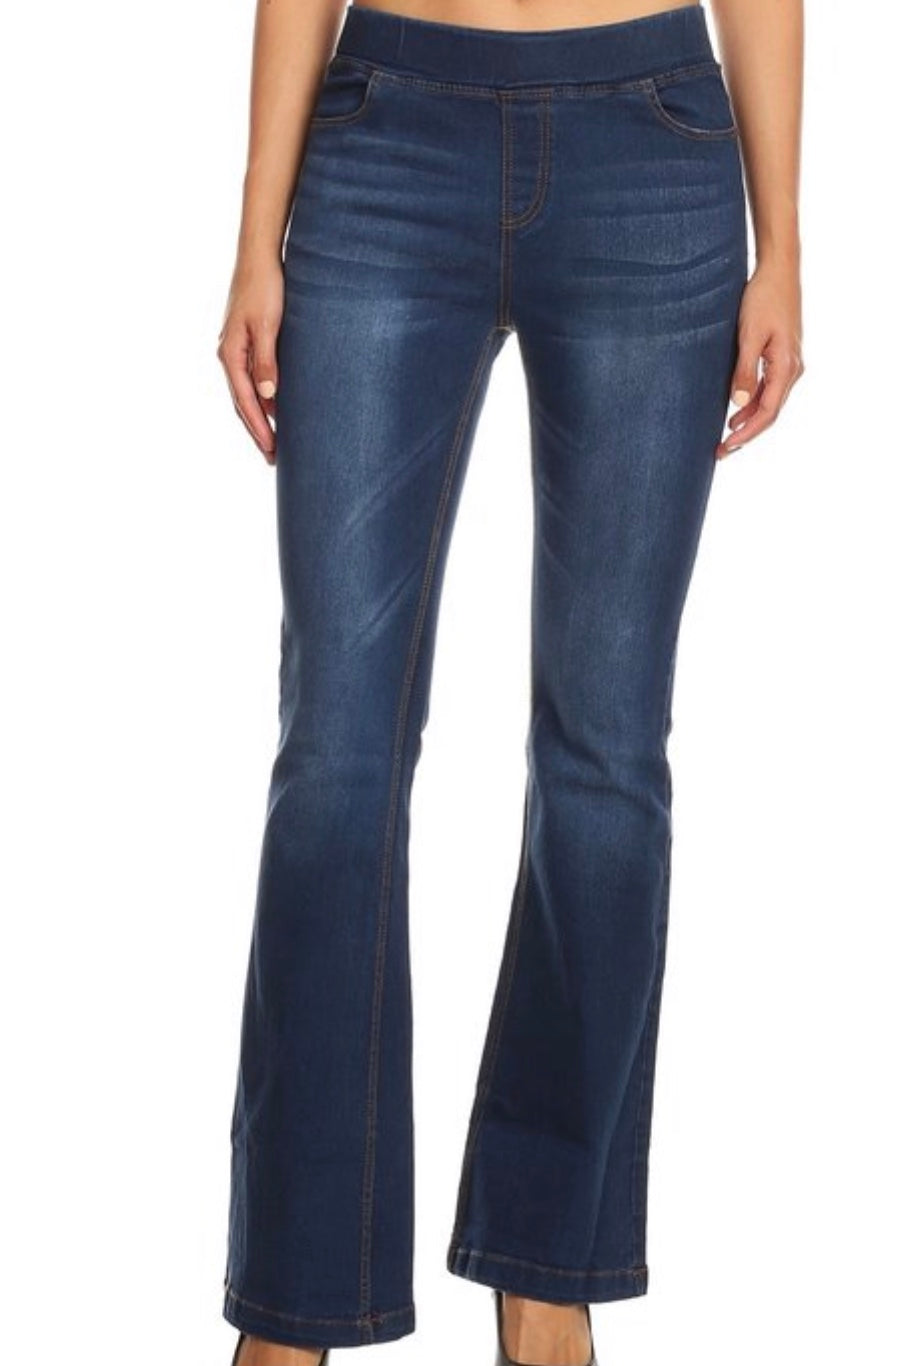 Freeland Jeggings Flare